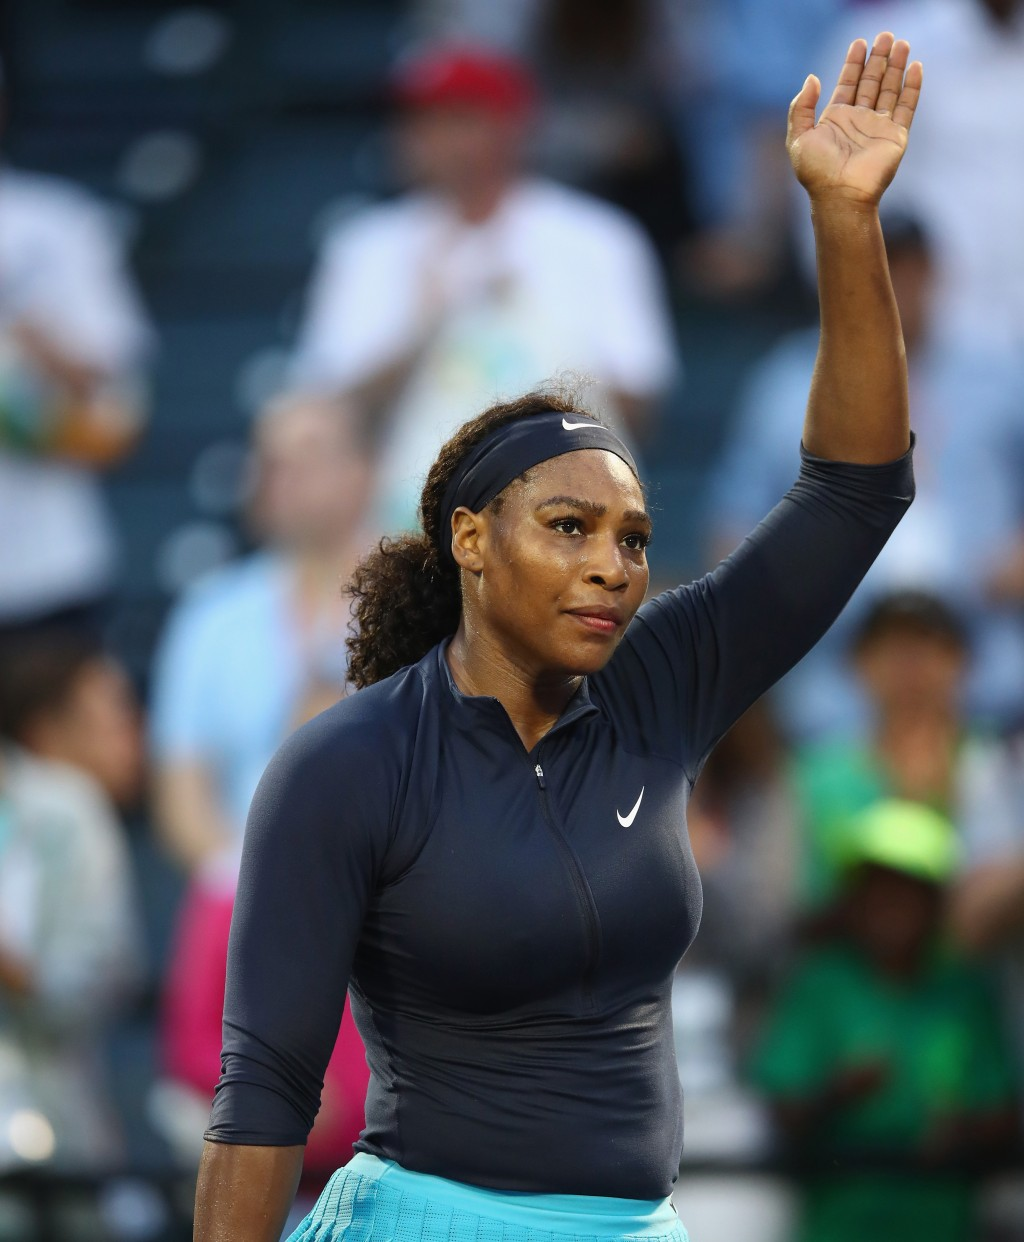 KEY BISCAYNE, FL - MARCH 24:  Serena Williams of the United States waves to the crowd after her three set victory against Christina McHale of the United States in their second round match during the Miami Open Presented by Itau at Crandon Park Tennis Center on March 24, 2016 in Key Biscayne, Florida.  (Photo by Clive Brunskill/Getty Images)